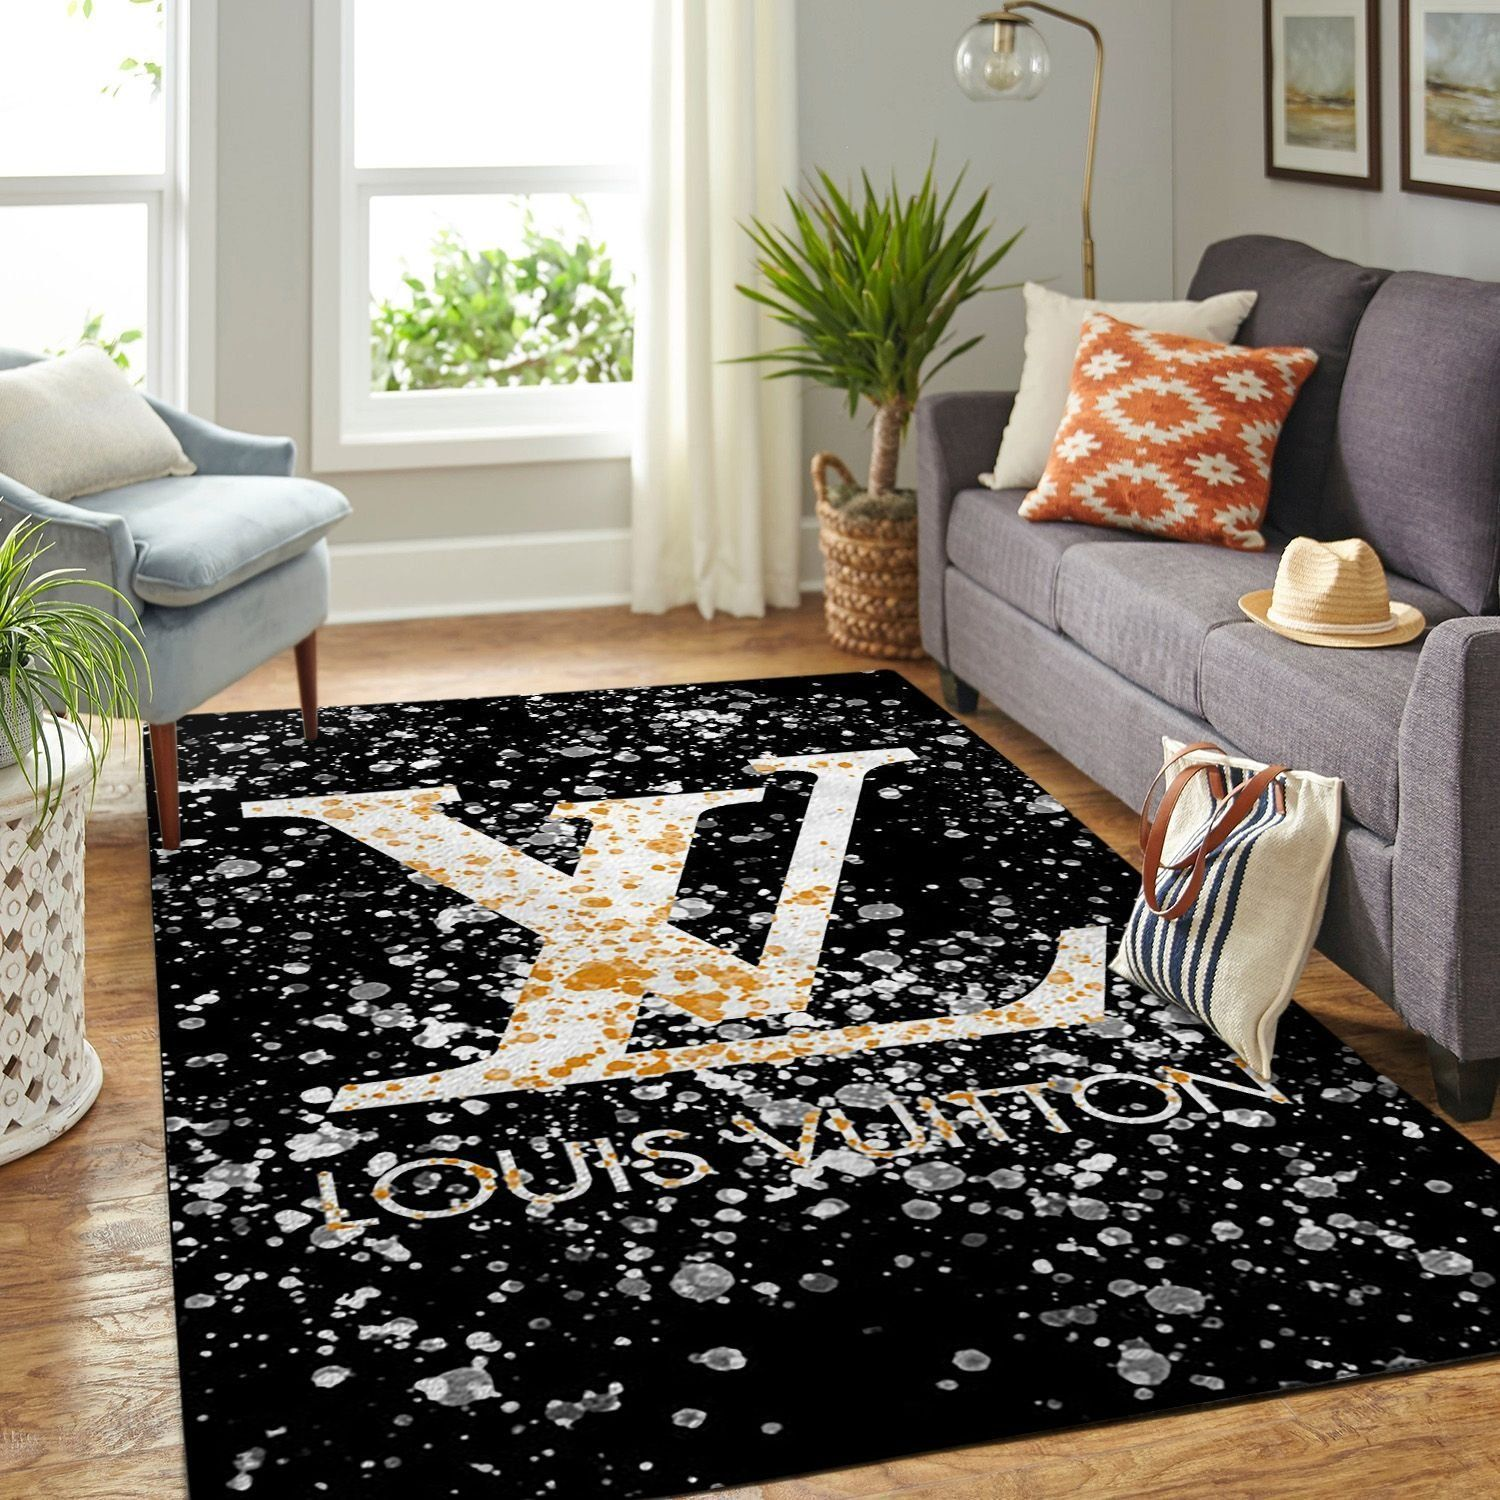 Amazon Louis Vuitton Living Room Area No1837 Rug